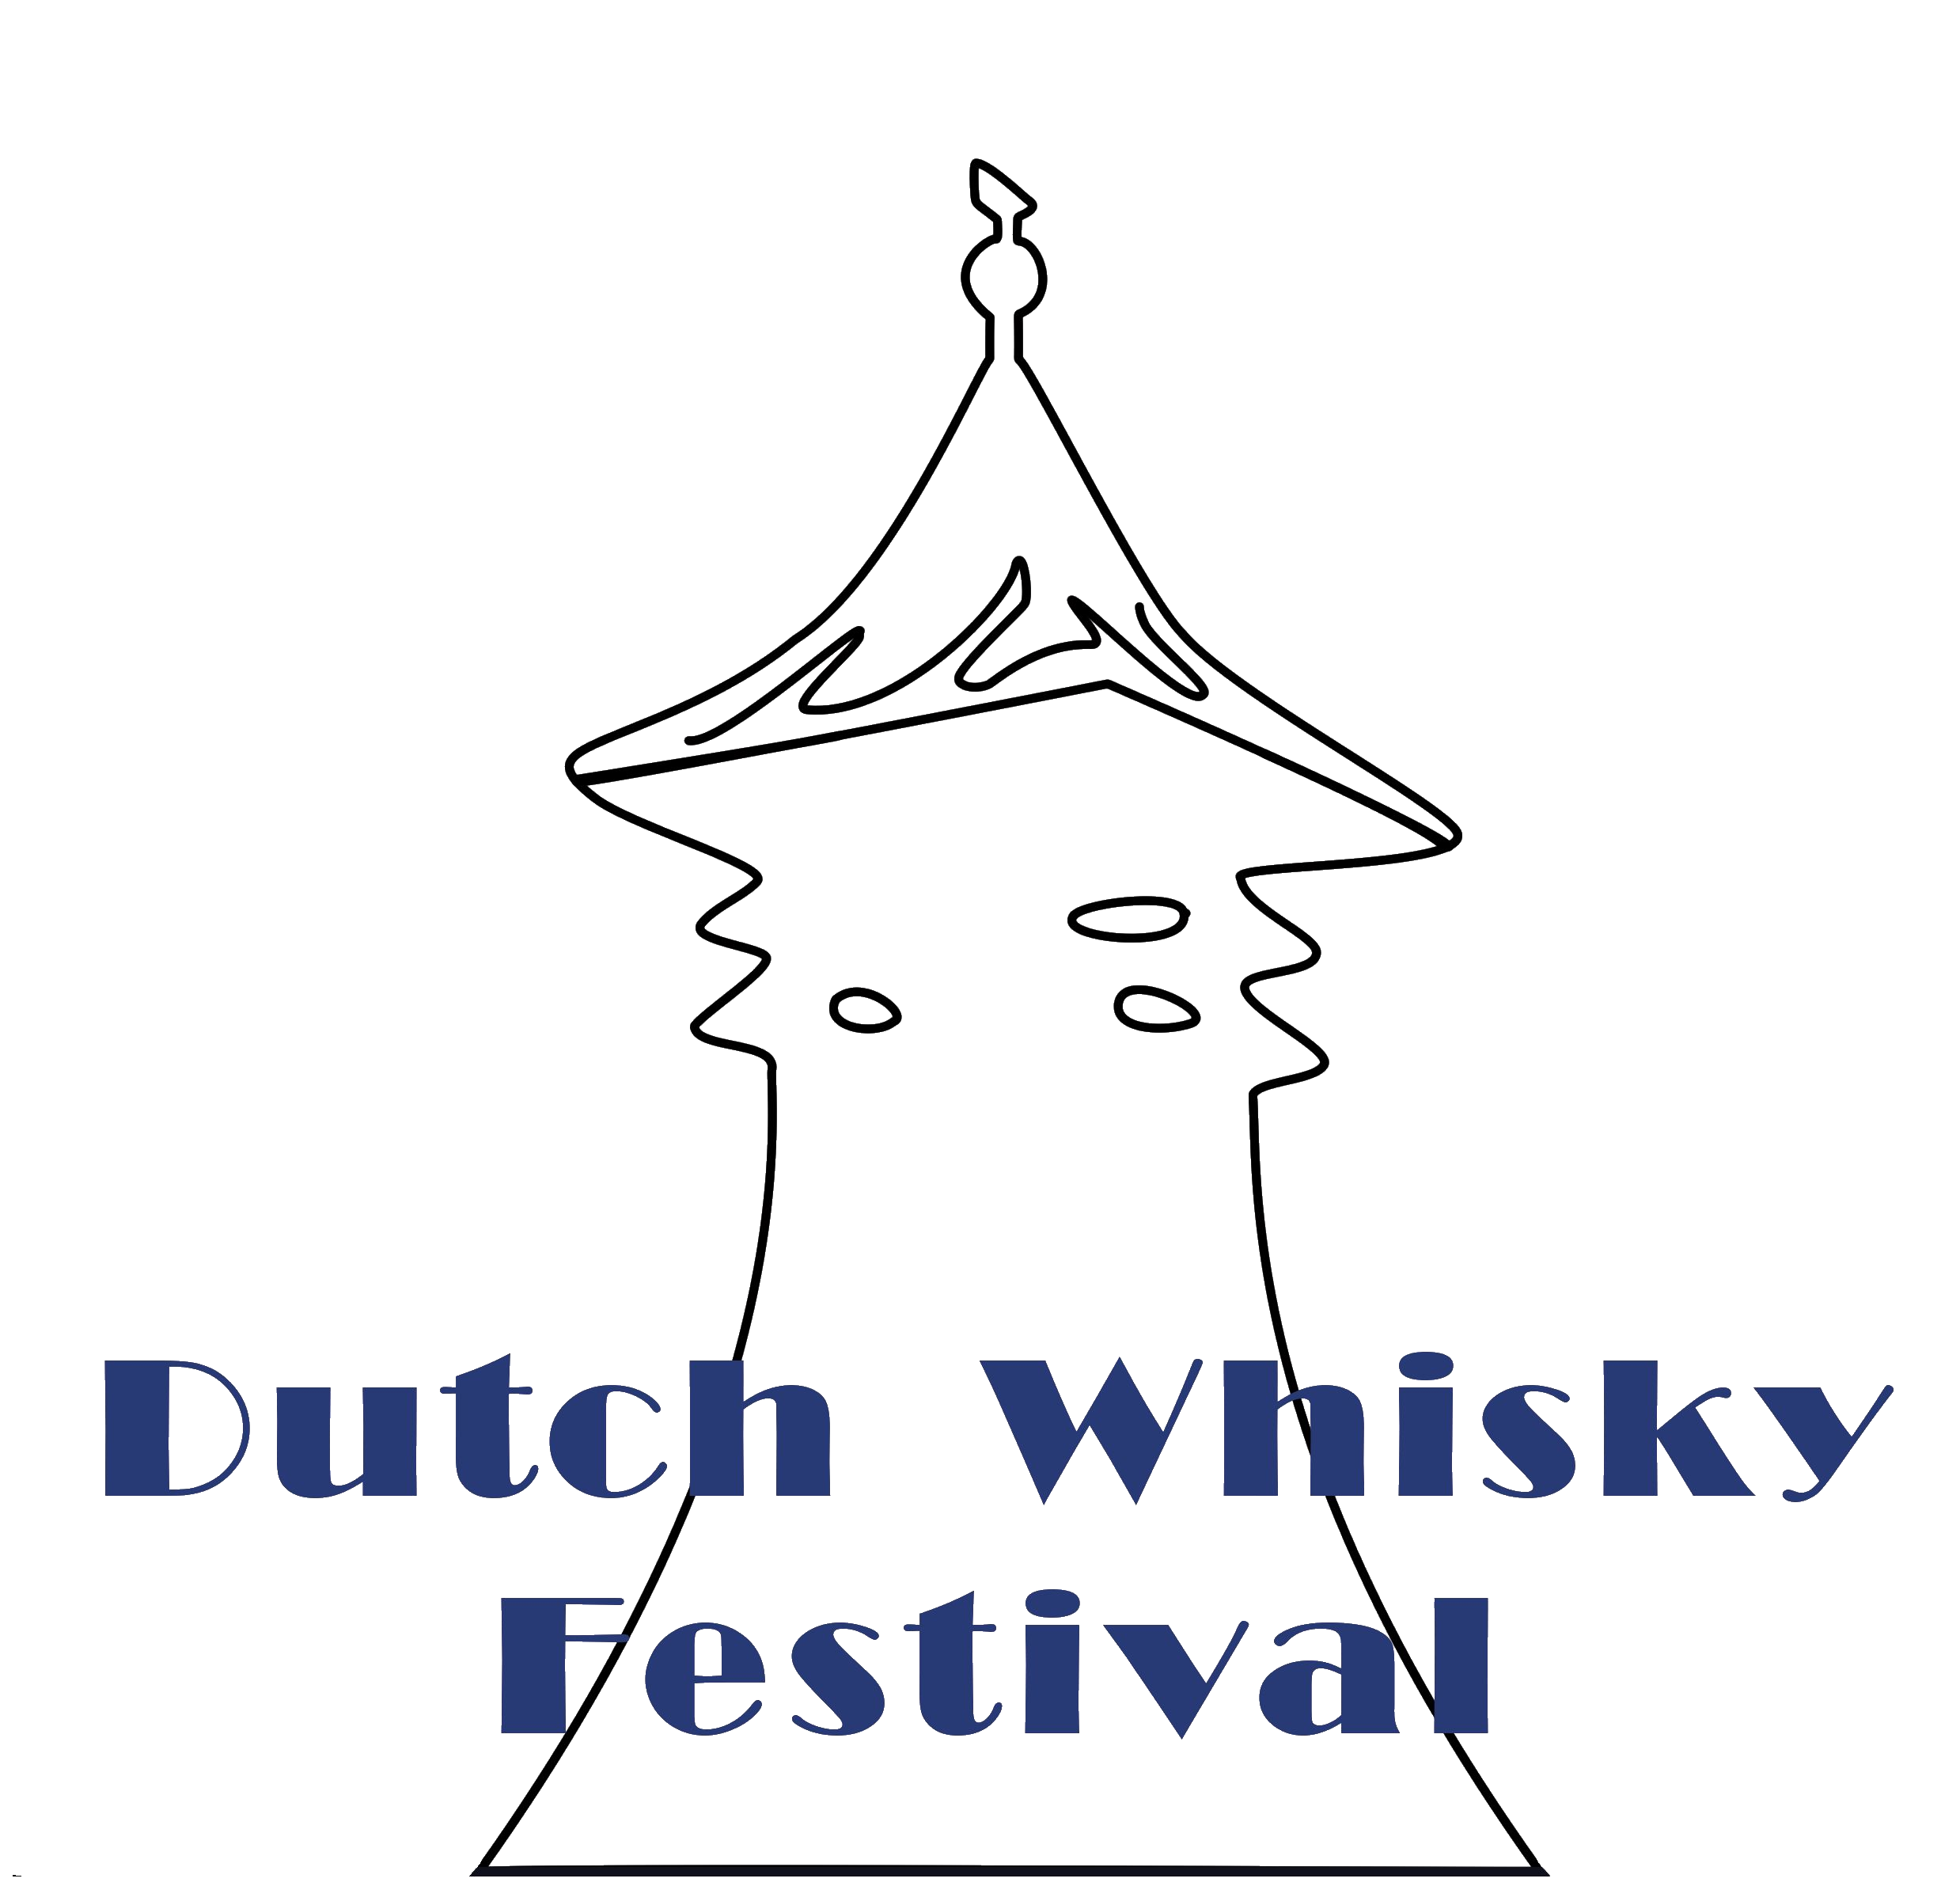 Dutch Whisky Festival